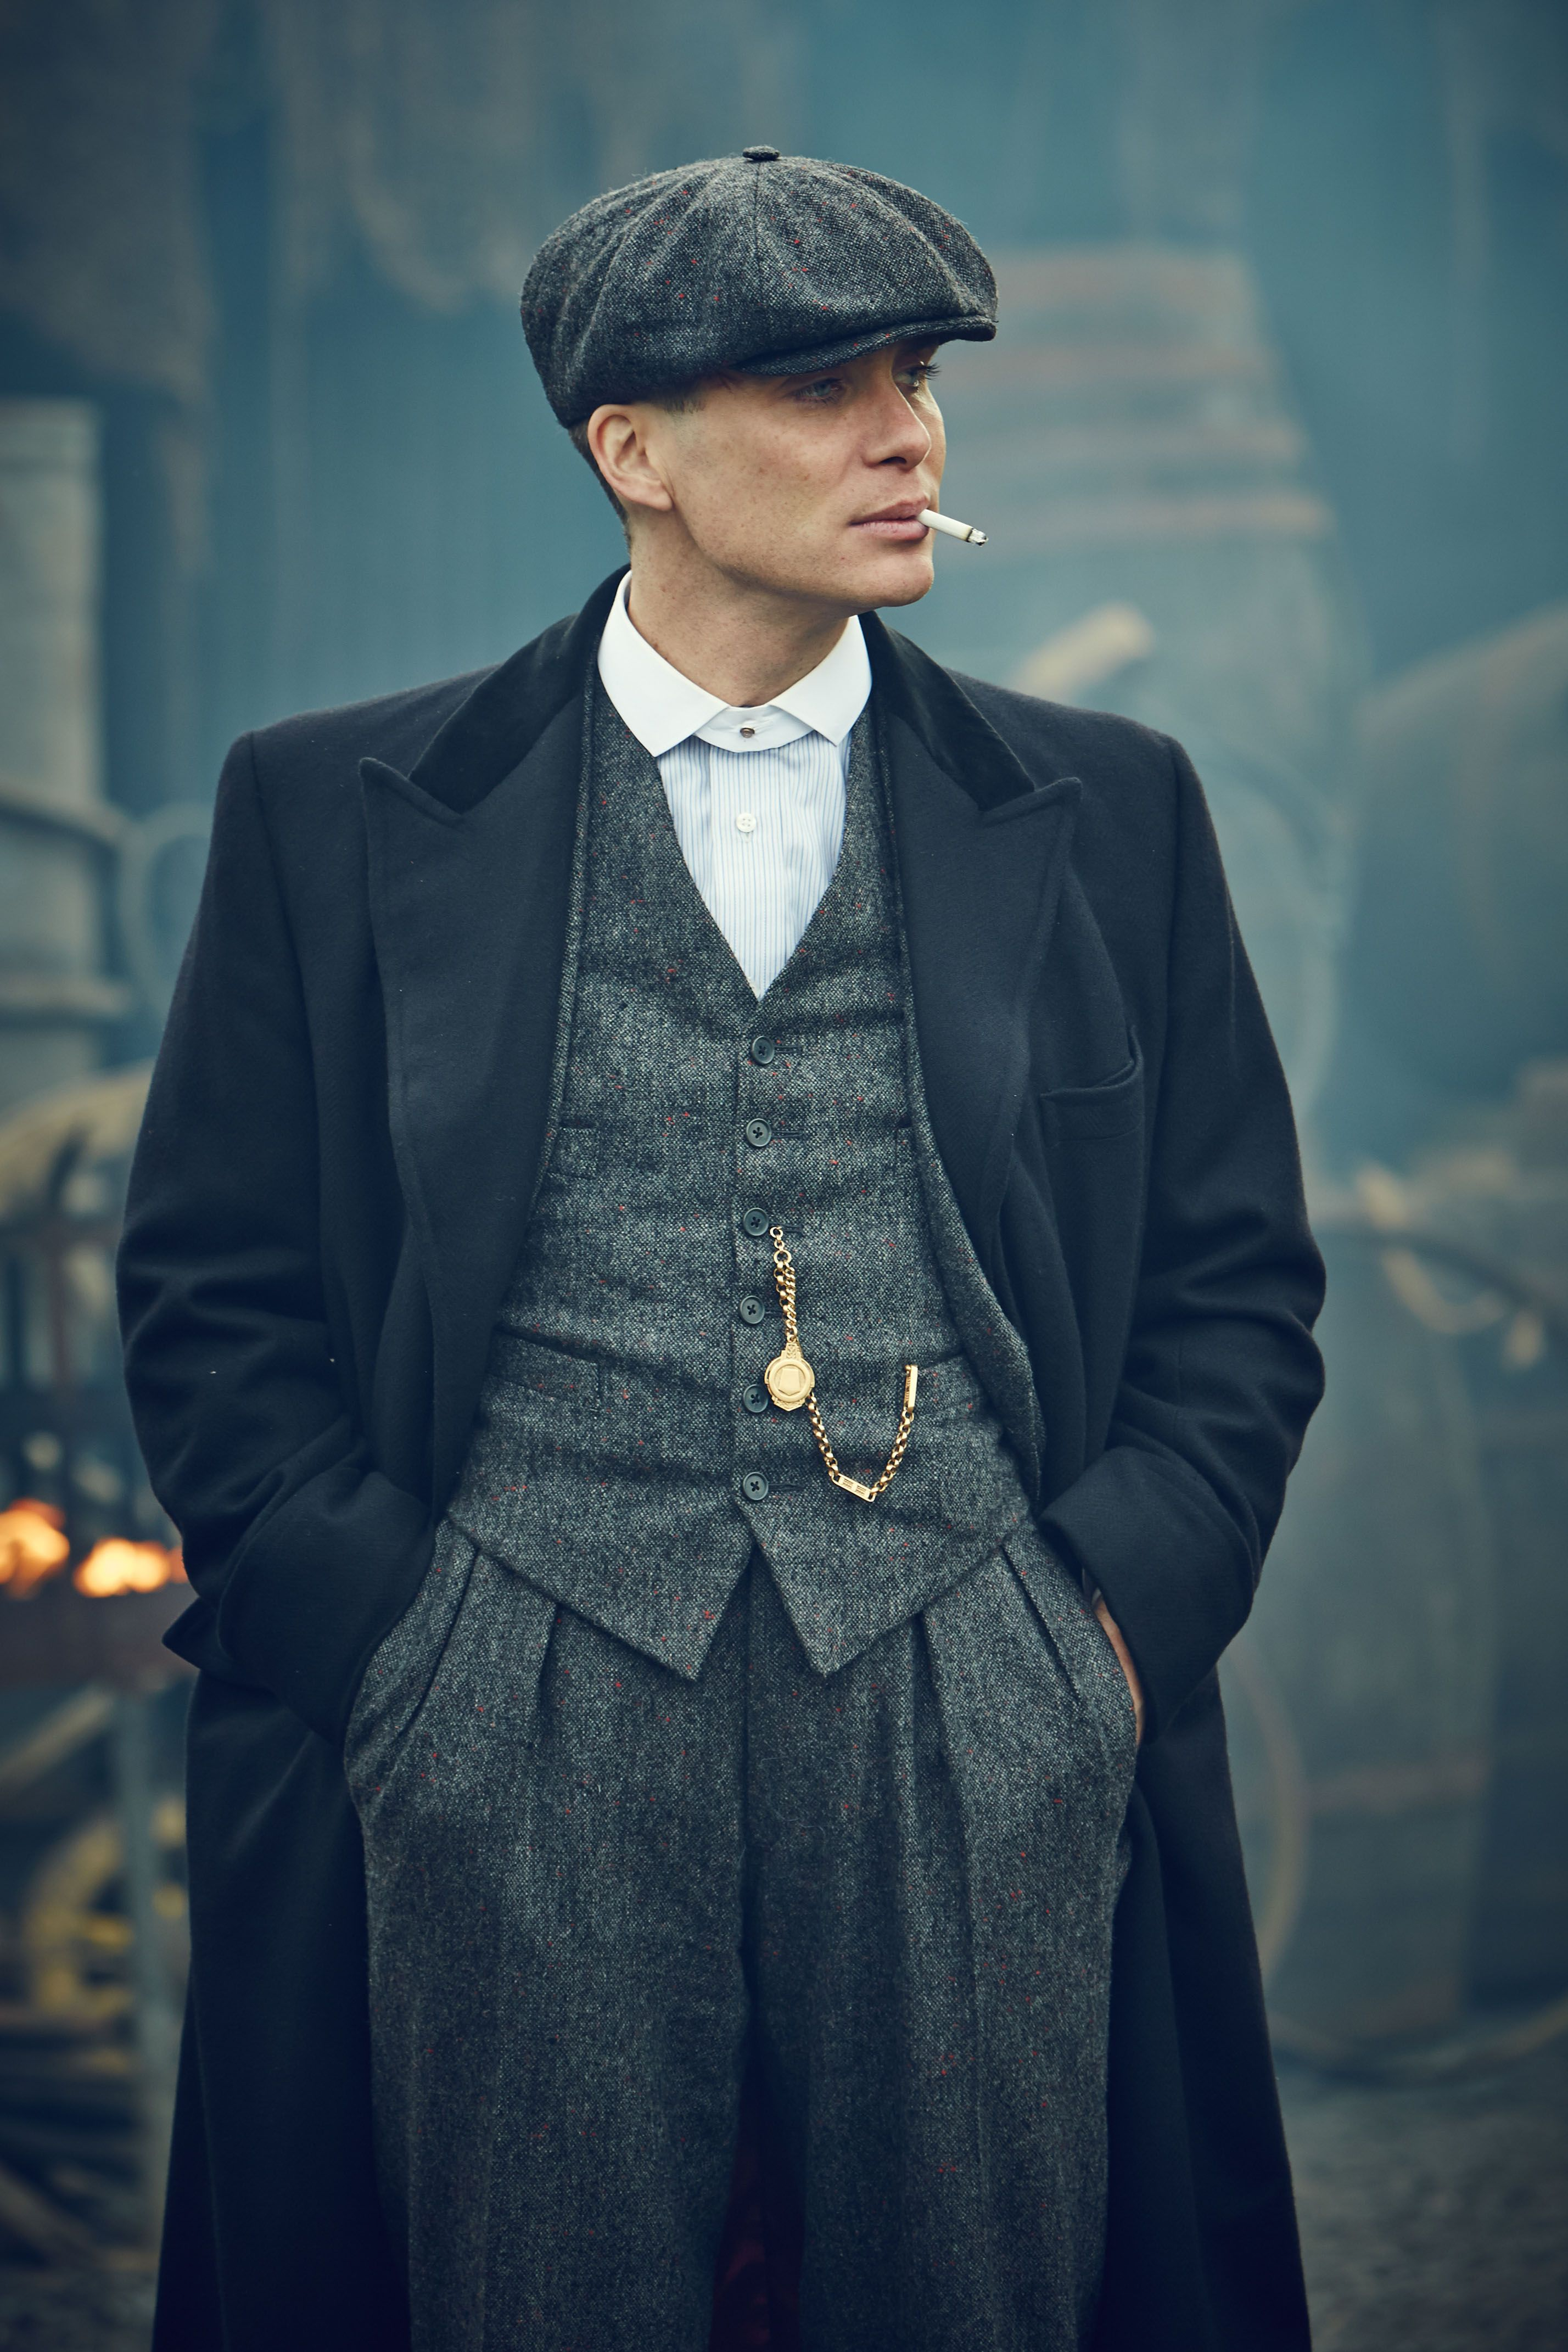 C M Peaky Blinders 1920s Mens Fashion Hipster Mens Fashion Mens Fashion Edgy